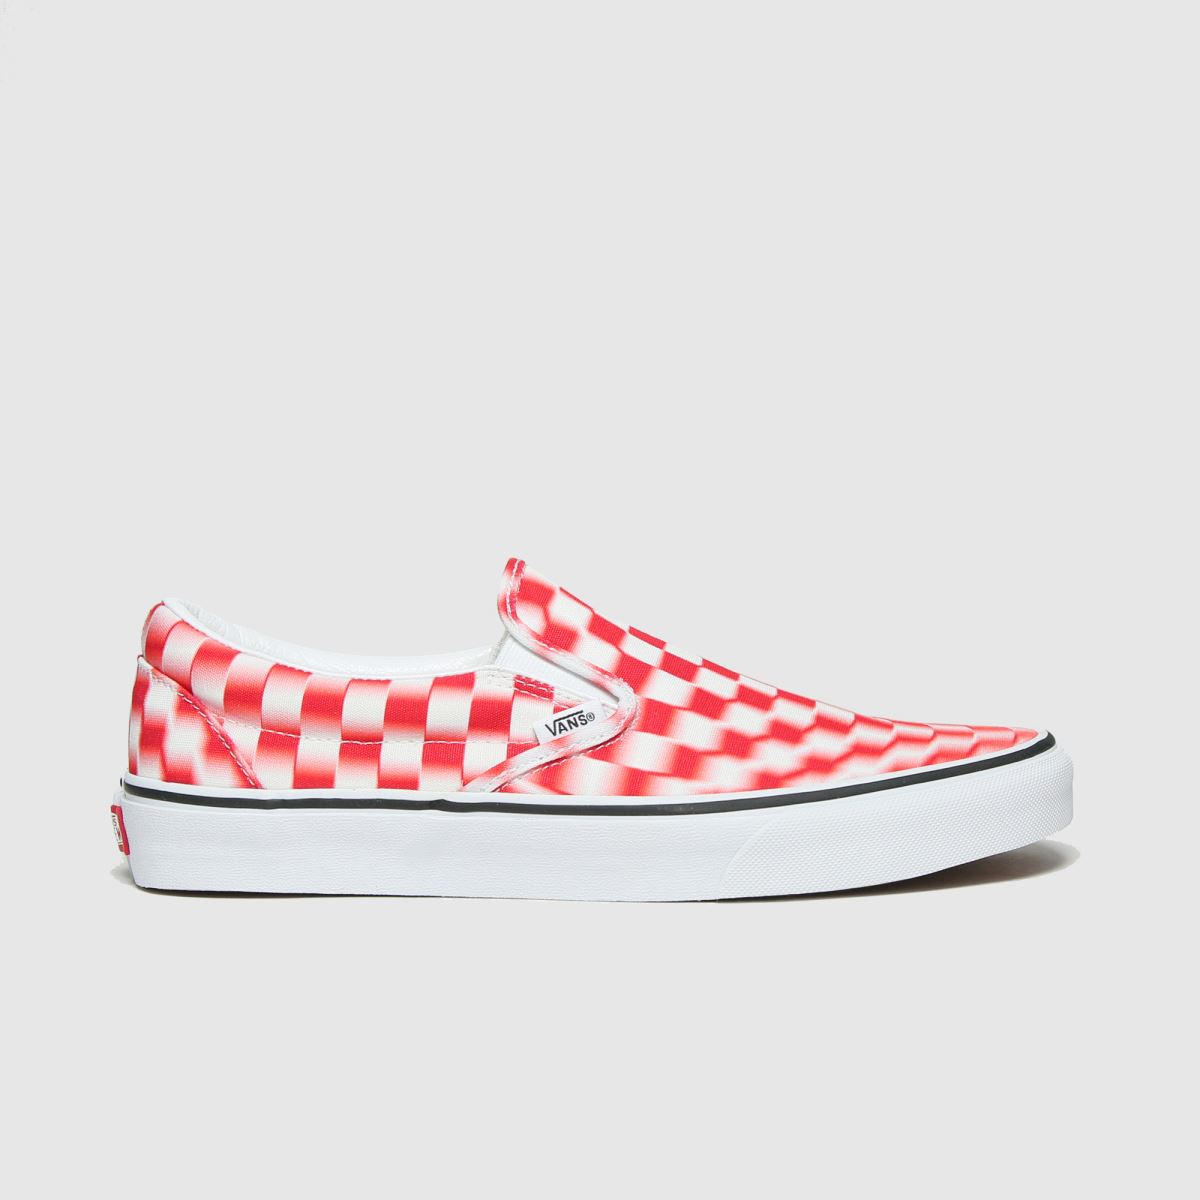 Vans White & Red Classic Slip On Blur Trainers